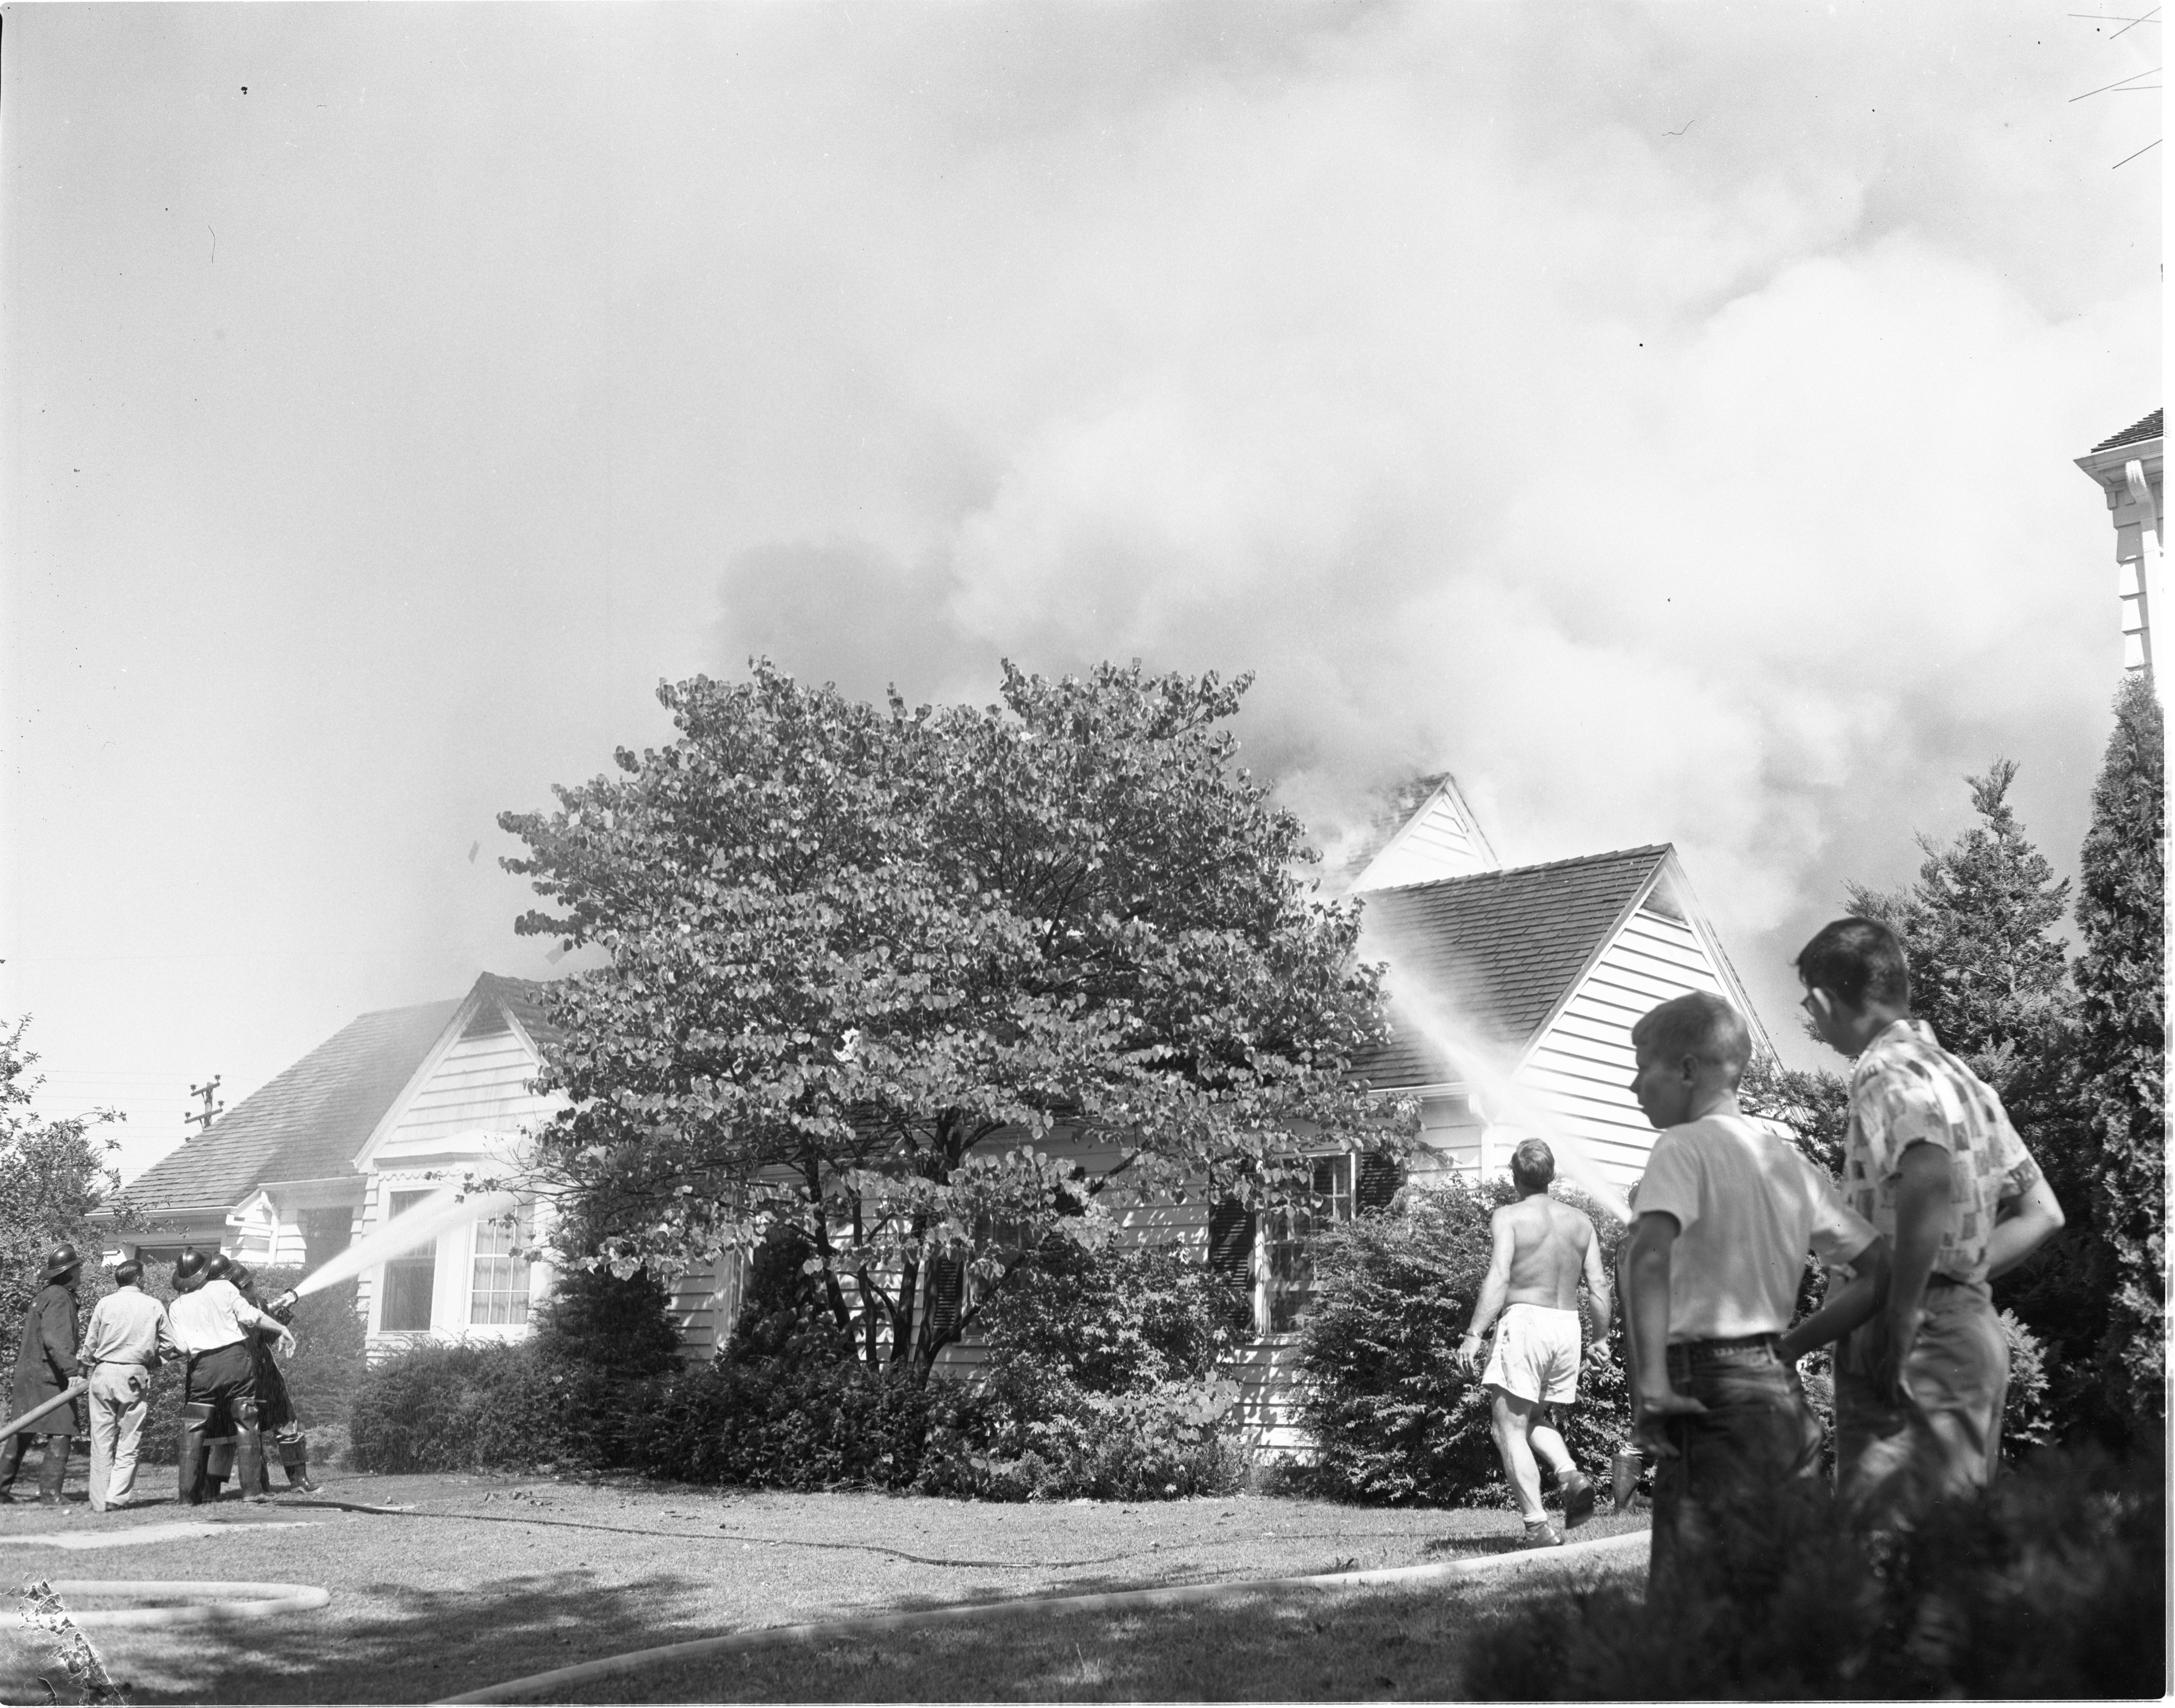 Neighbors Watch As Firemen Fight A House Fire At 2505 Brockman Blvd, September 1955 image